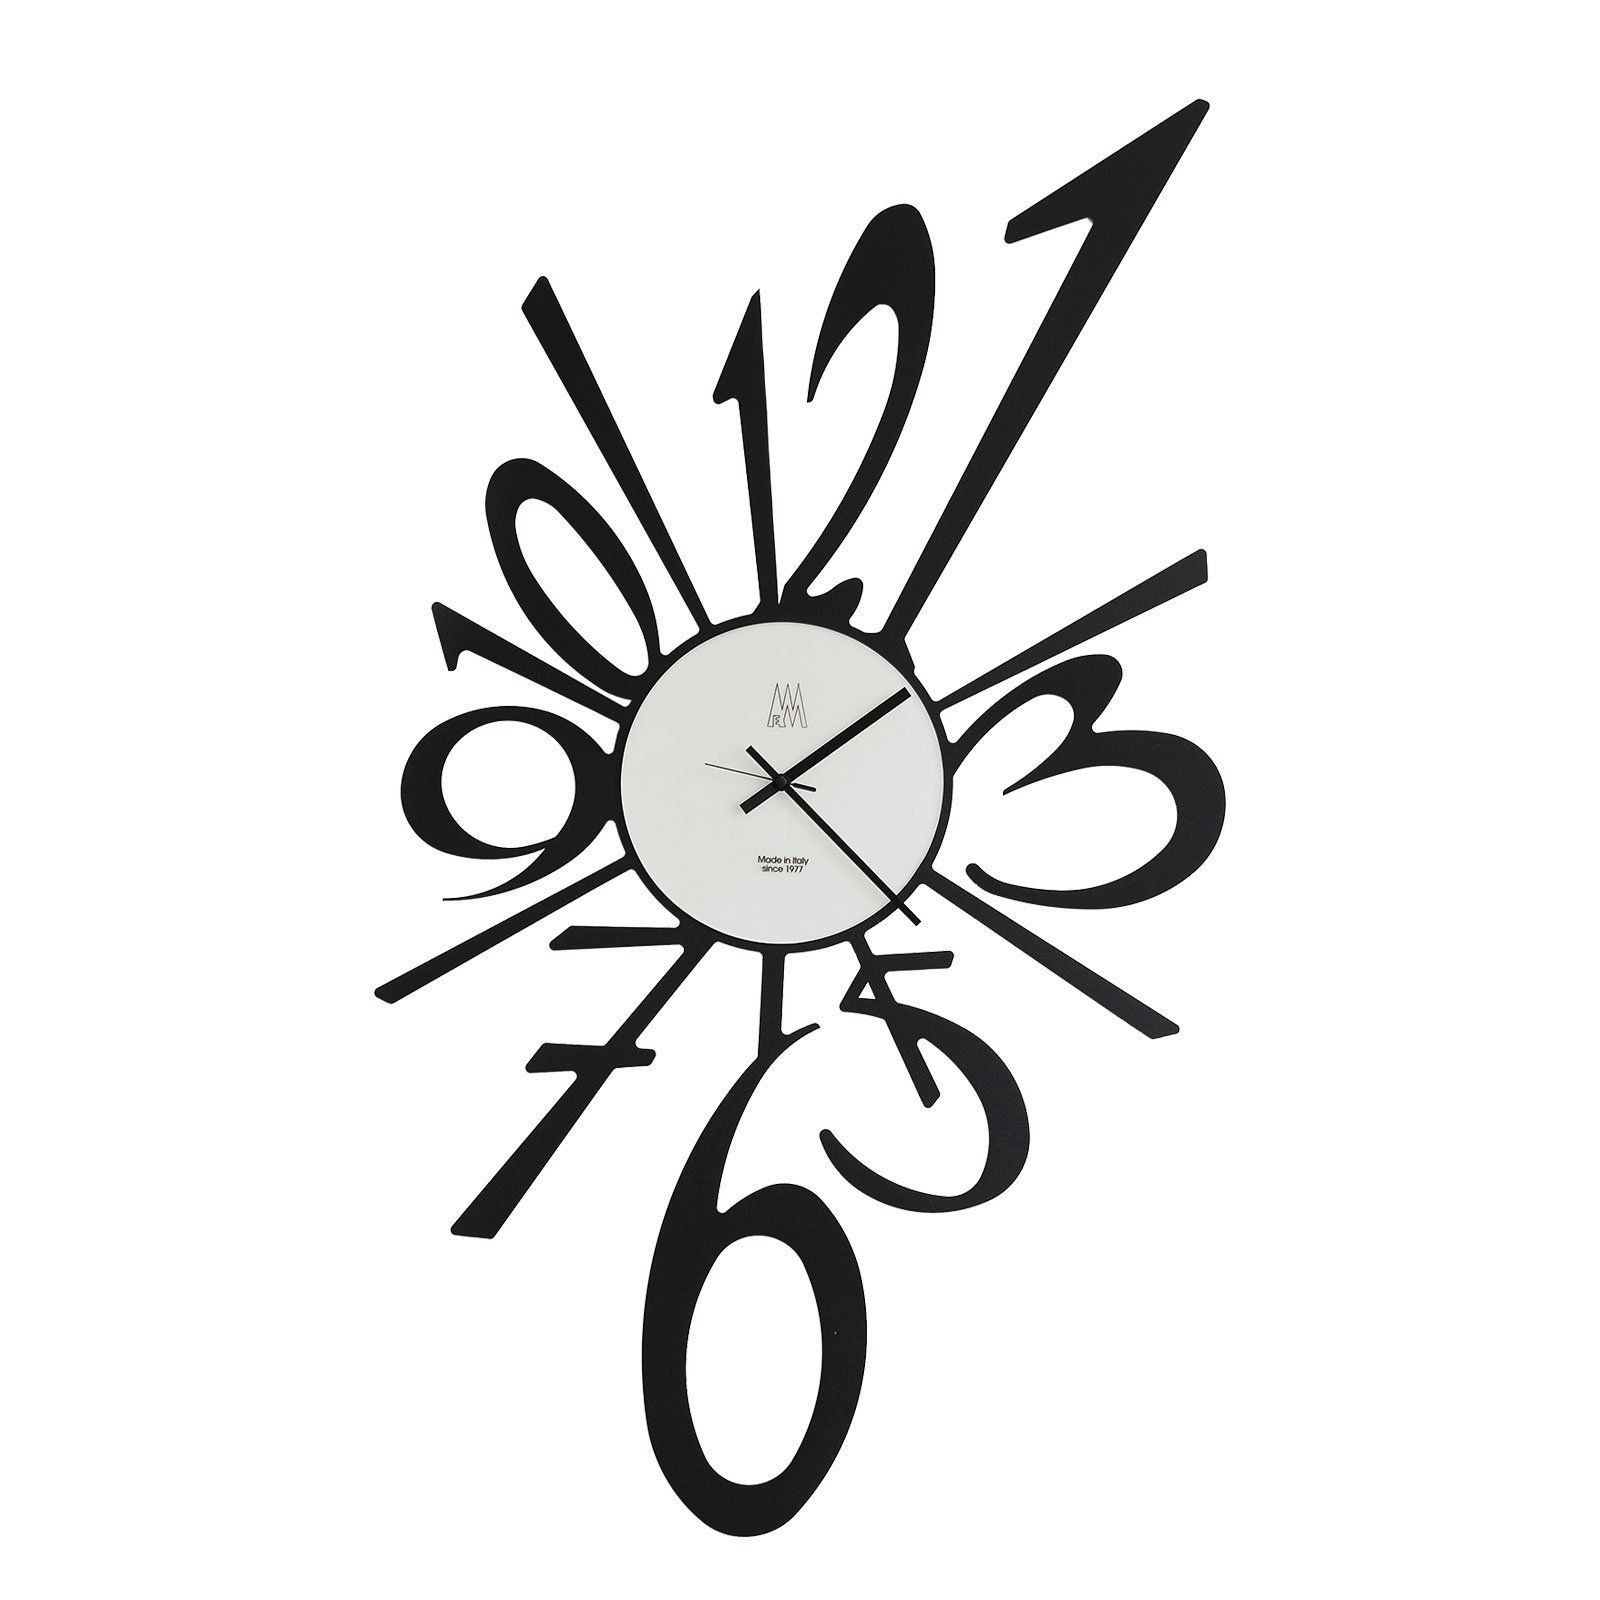 Incroyable Unique Kitchen Wall Clocks